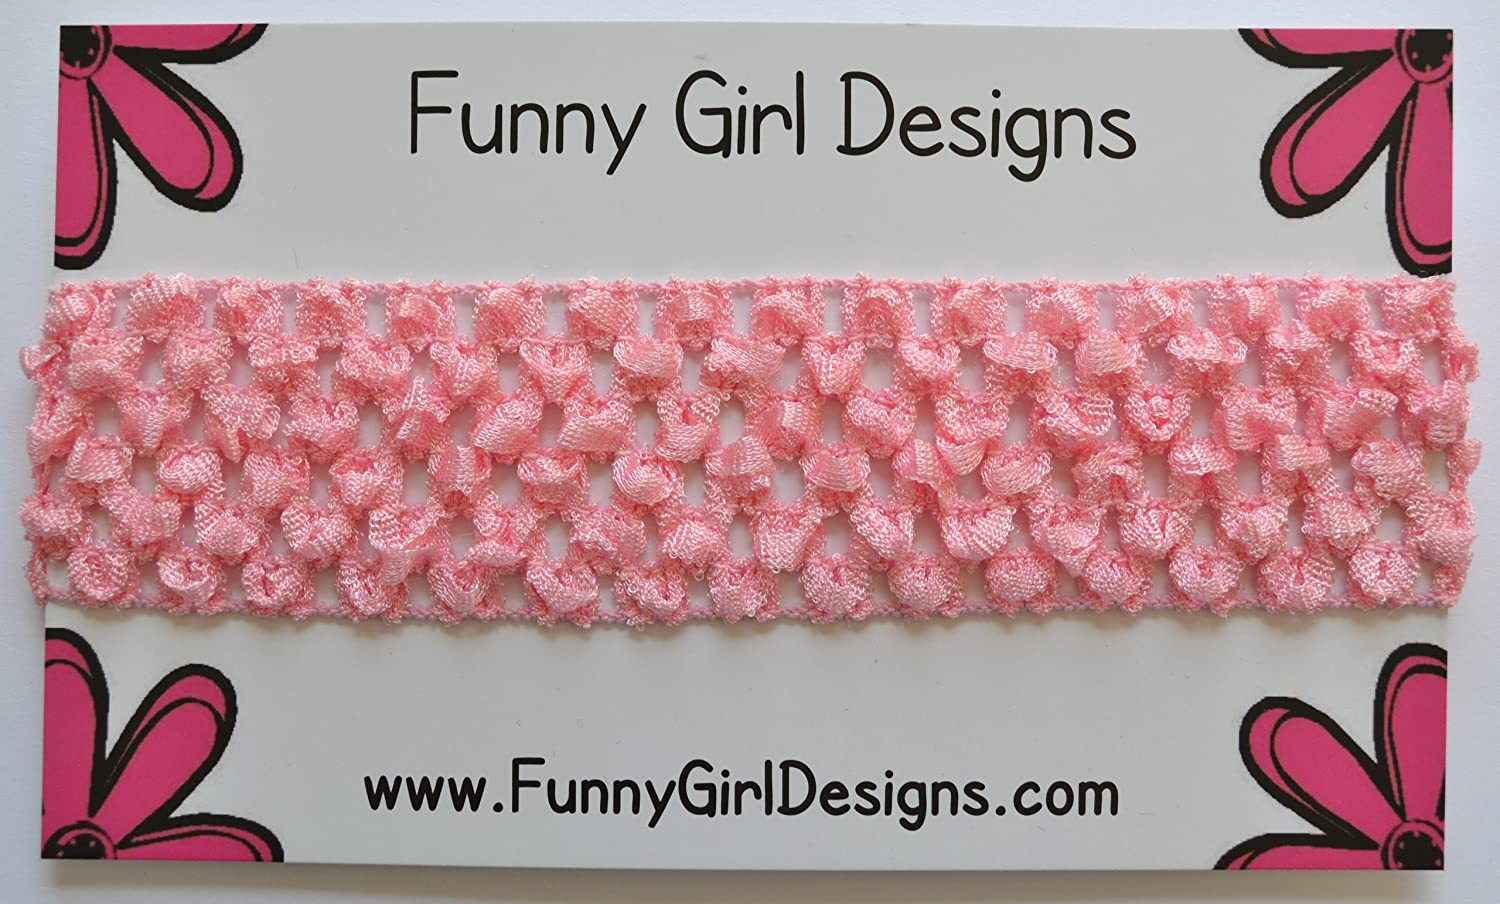 Funny Girl Designs 1.5 inch Baby Crochet Headband - Recommended Ages: Newborn to 4 years